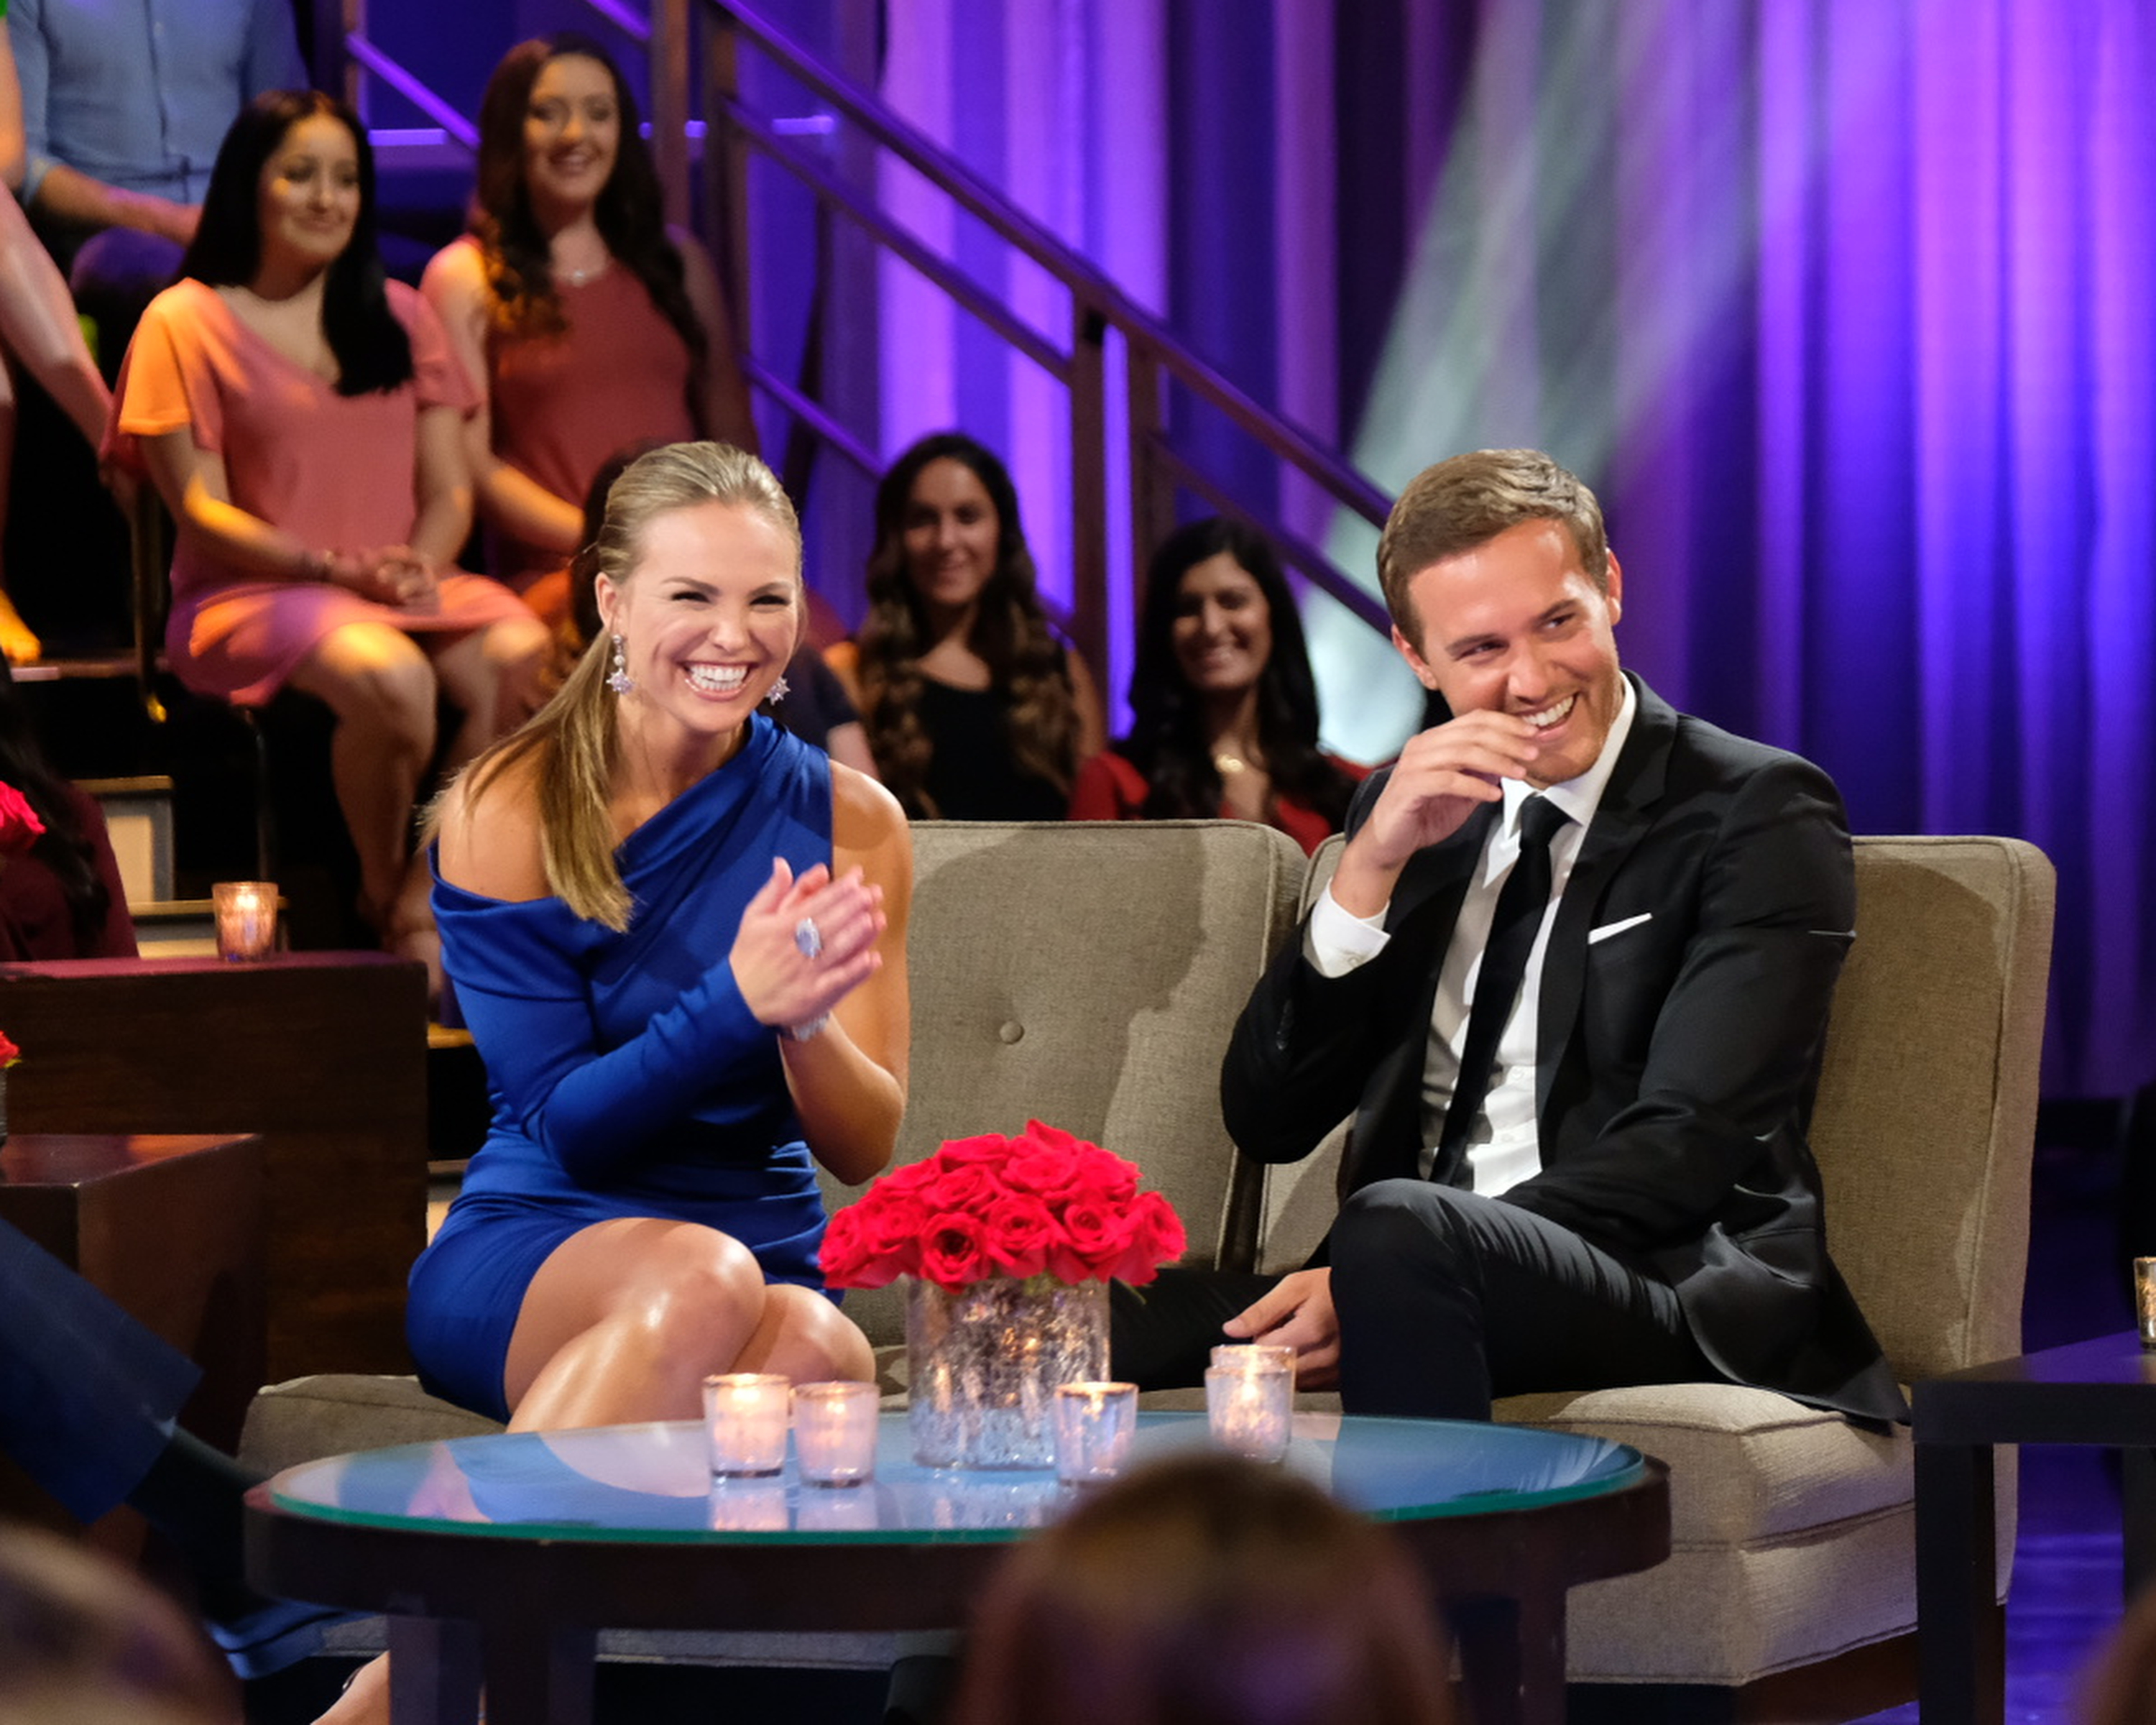 ABC gives early look at 'Bachelor' Season 24 contestants